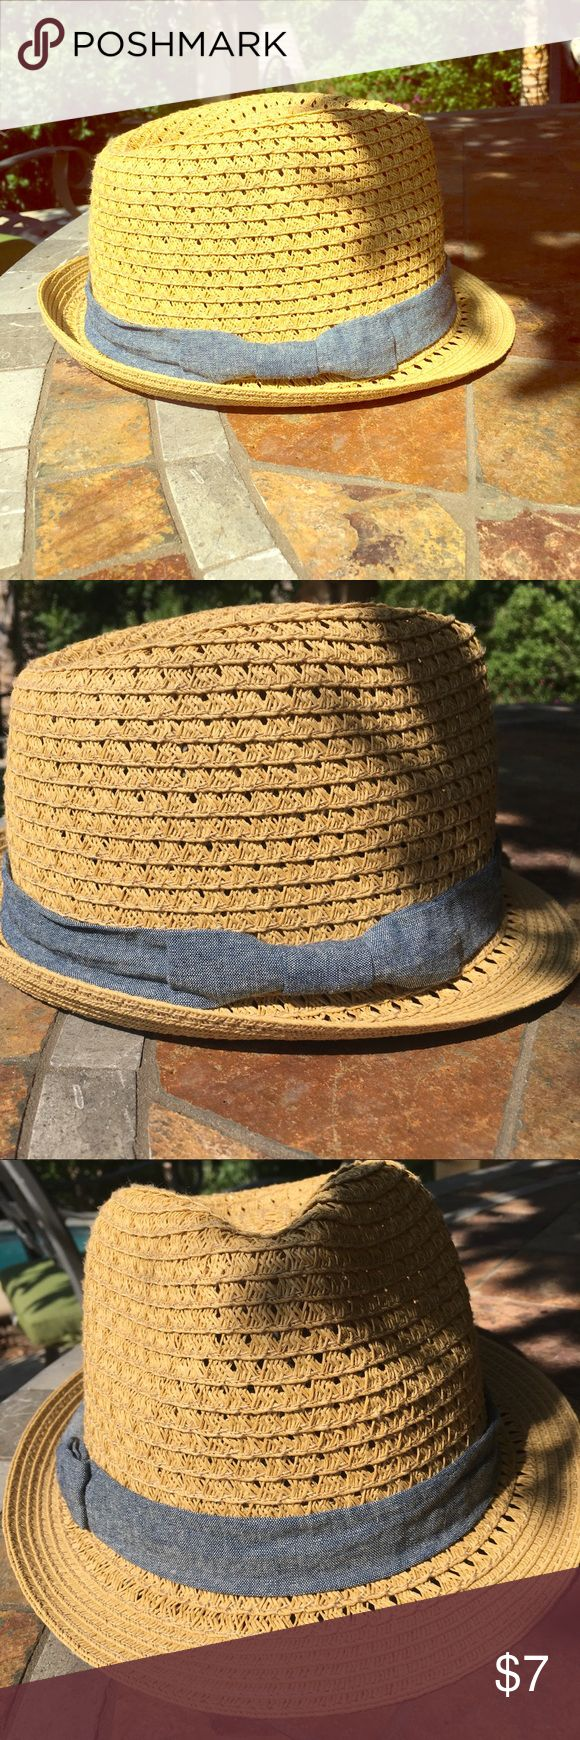 Tan Straw Fedora Hat Lightweight tan Straw fedora hate with chambray Rubino around it. Ribbon has a bow on one side. Great hat that matches with everything! Target Accessories Hats